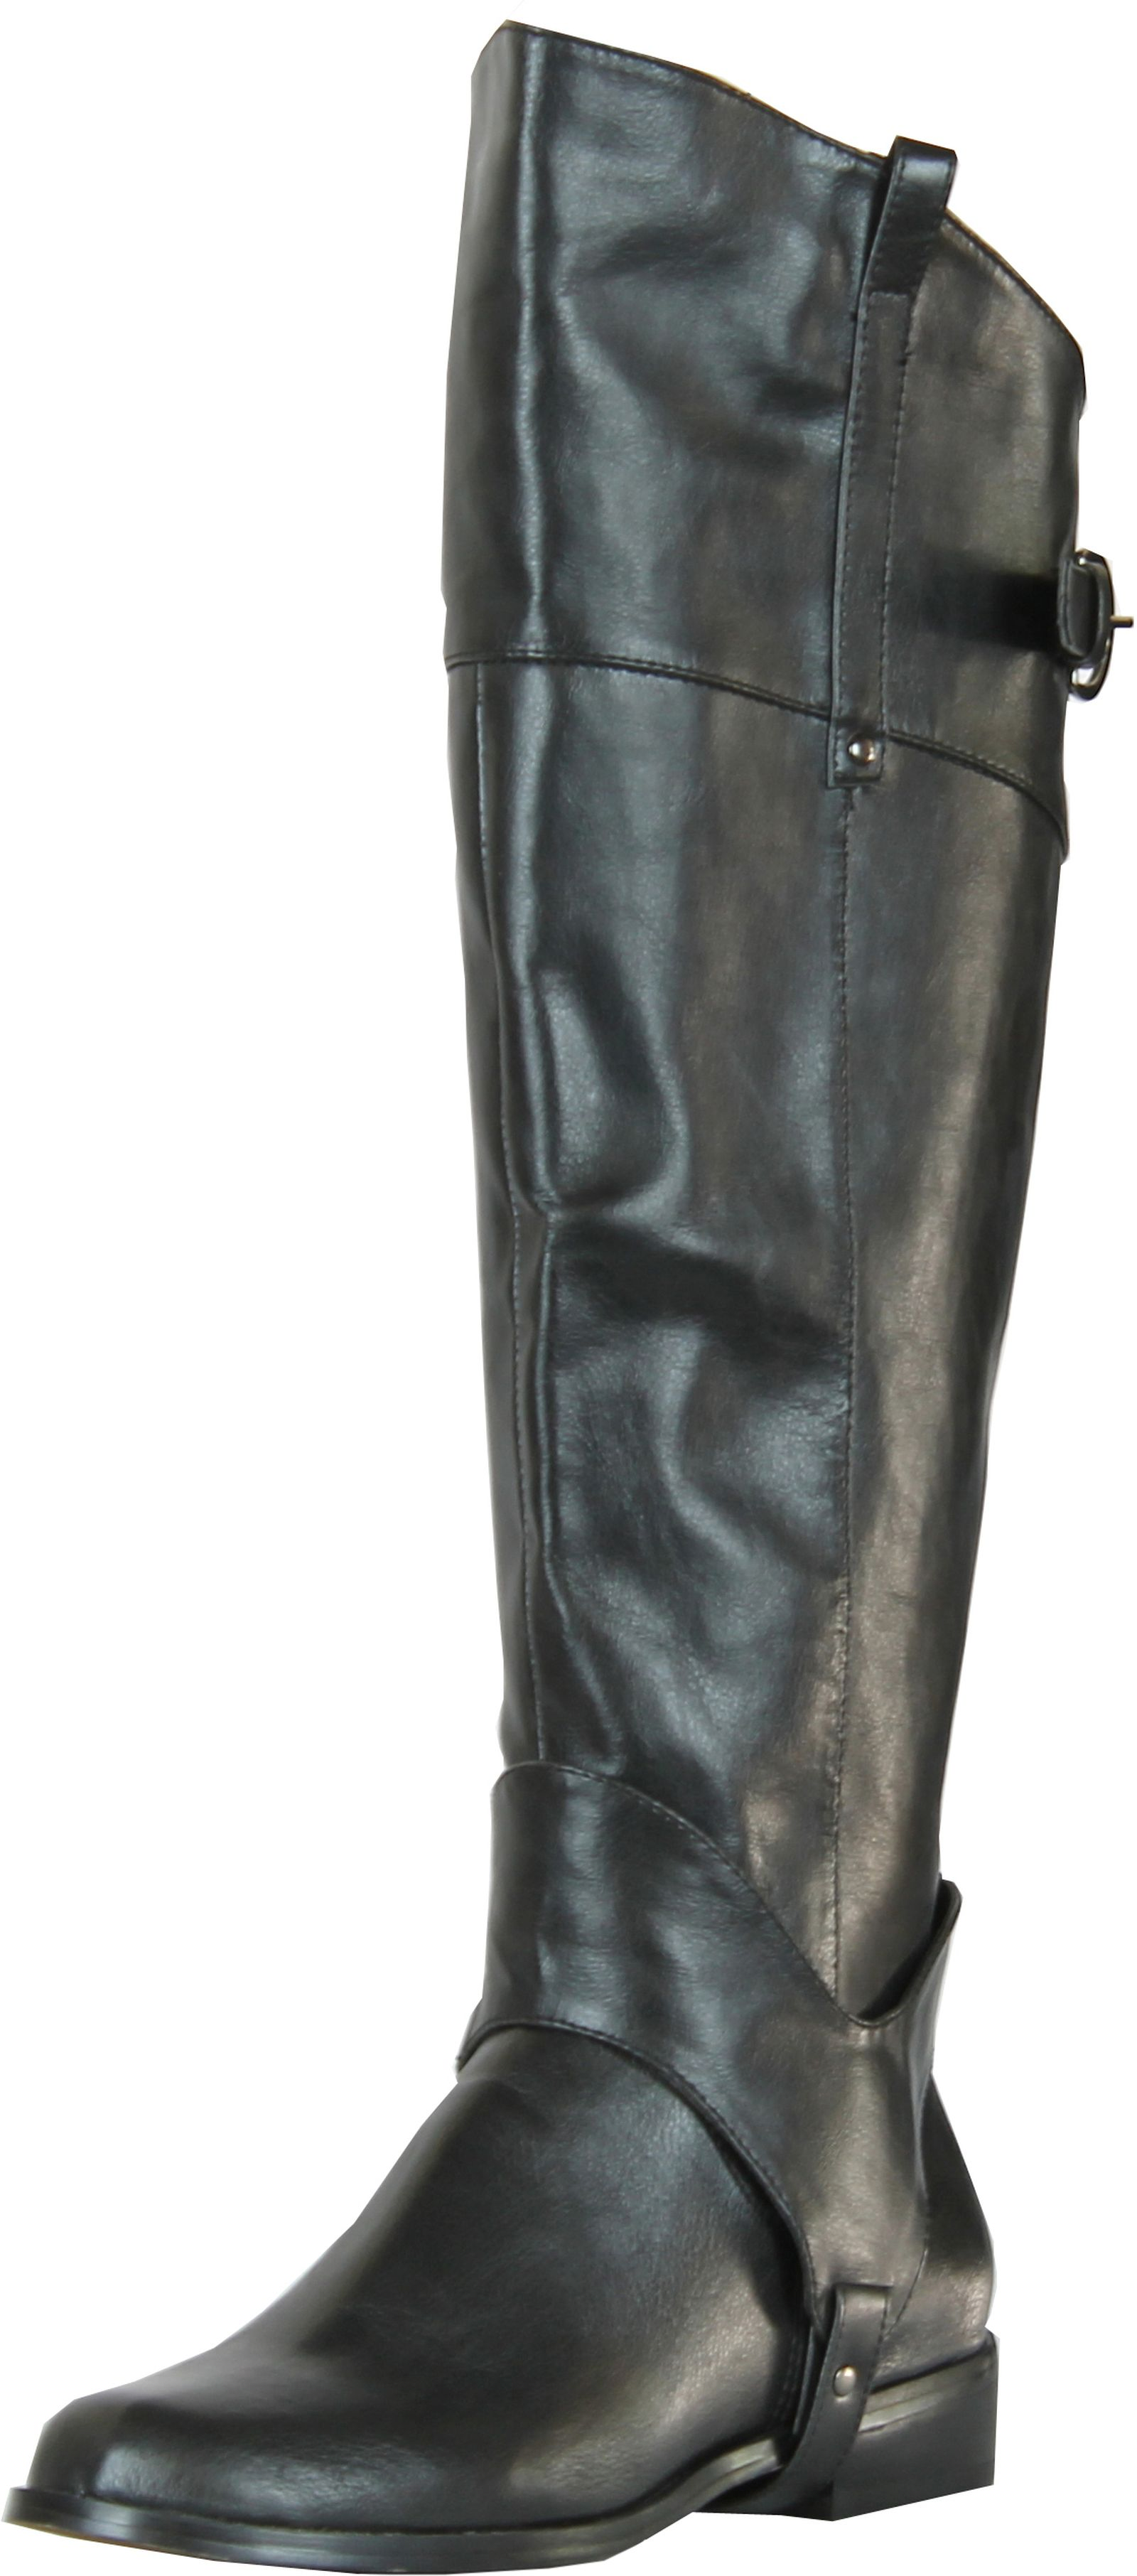 Creative Pebbled Leather With Front And Back Buckle Details Make The Naturalizer Womens Macnair Wideshaft Riding Boot Perfect For A Day On Your Harley, Or Horse Make Your Fashion Debut At Work Or At Play This Fall And Winter In The Smooth And